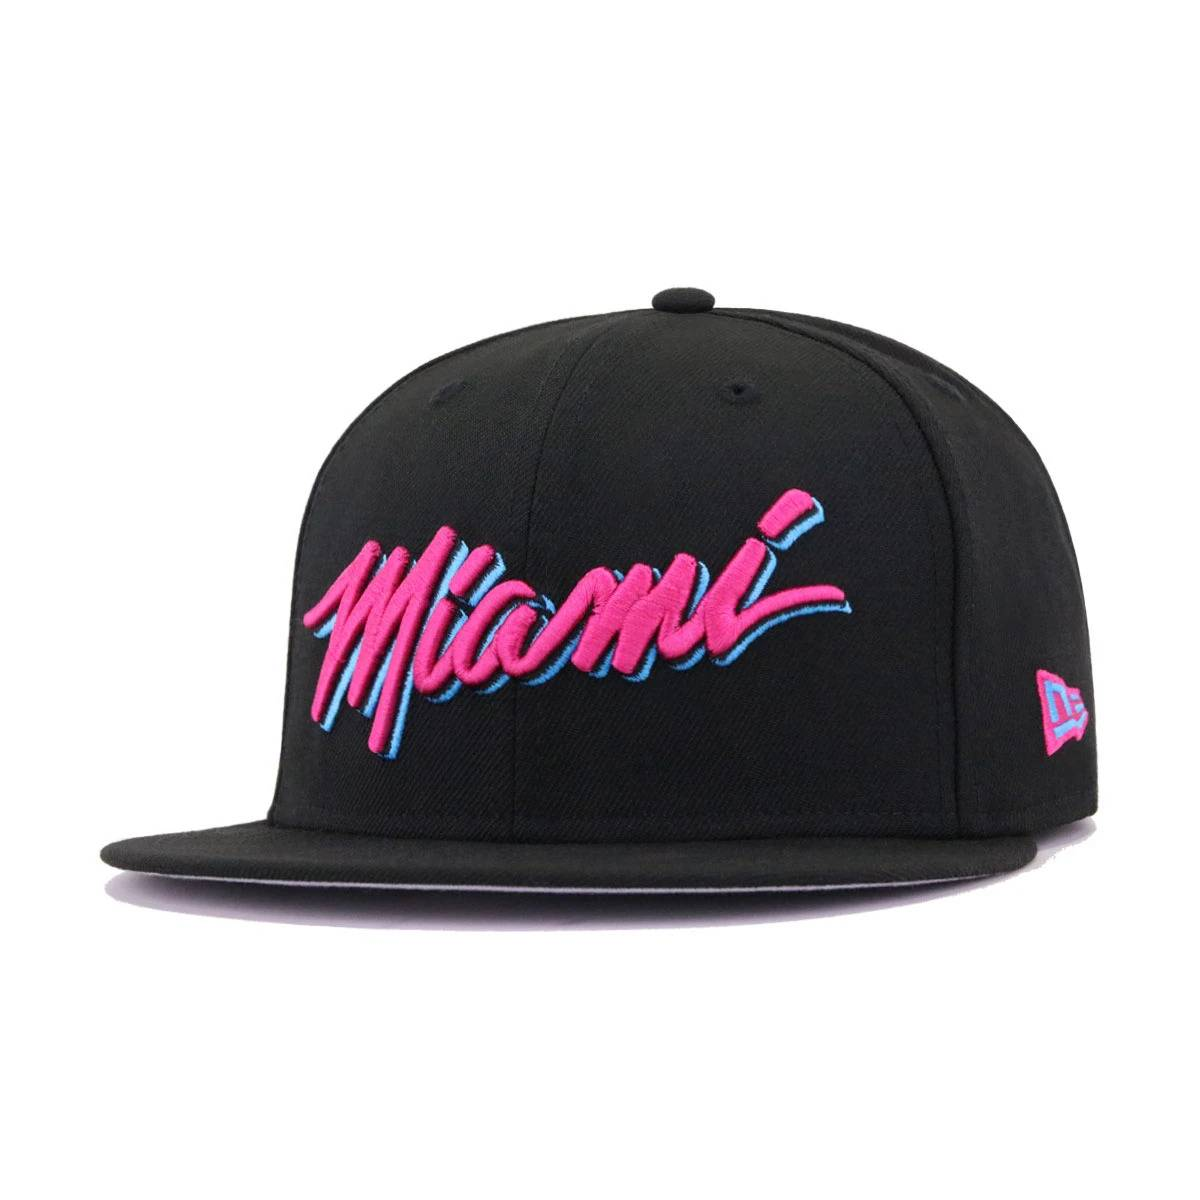 Miami Heat Black Beet Root Purple City Series New Era 59Fifty Fitted